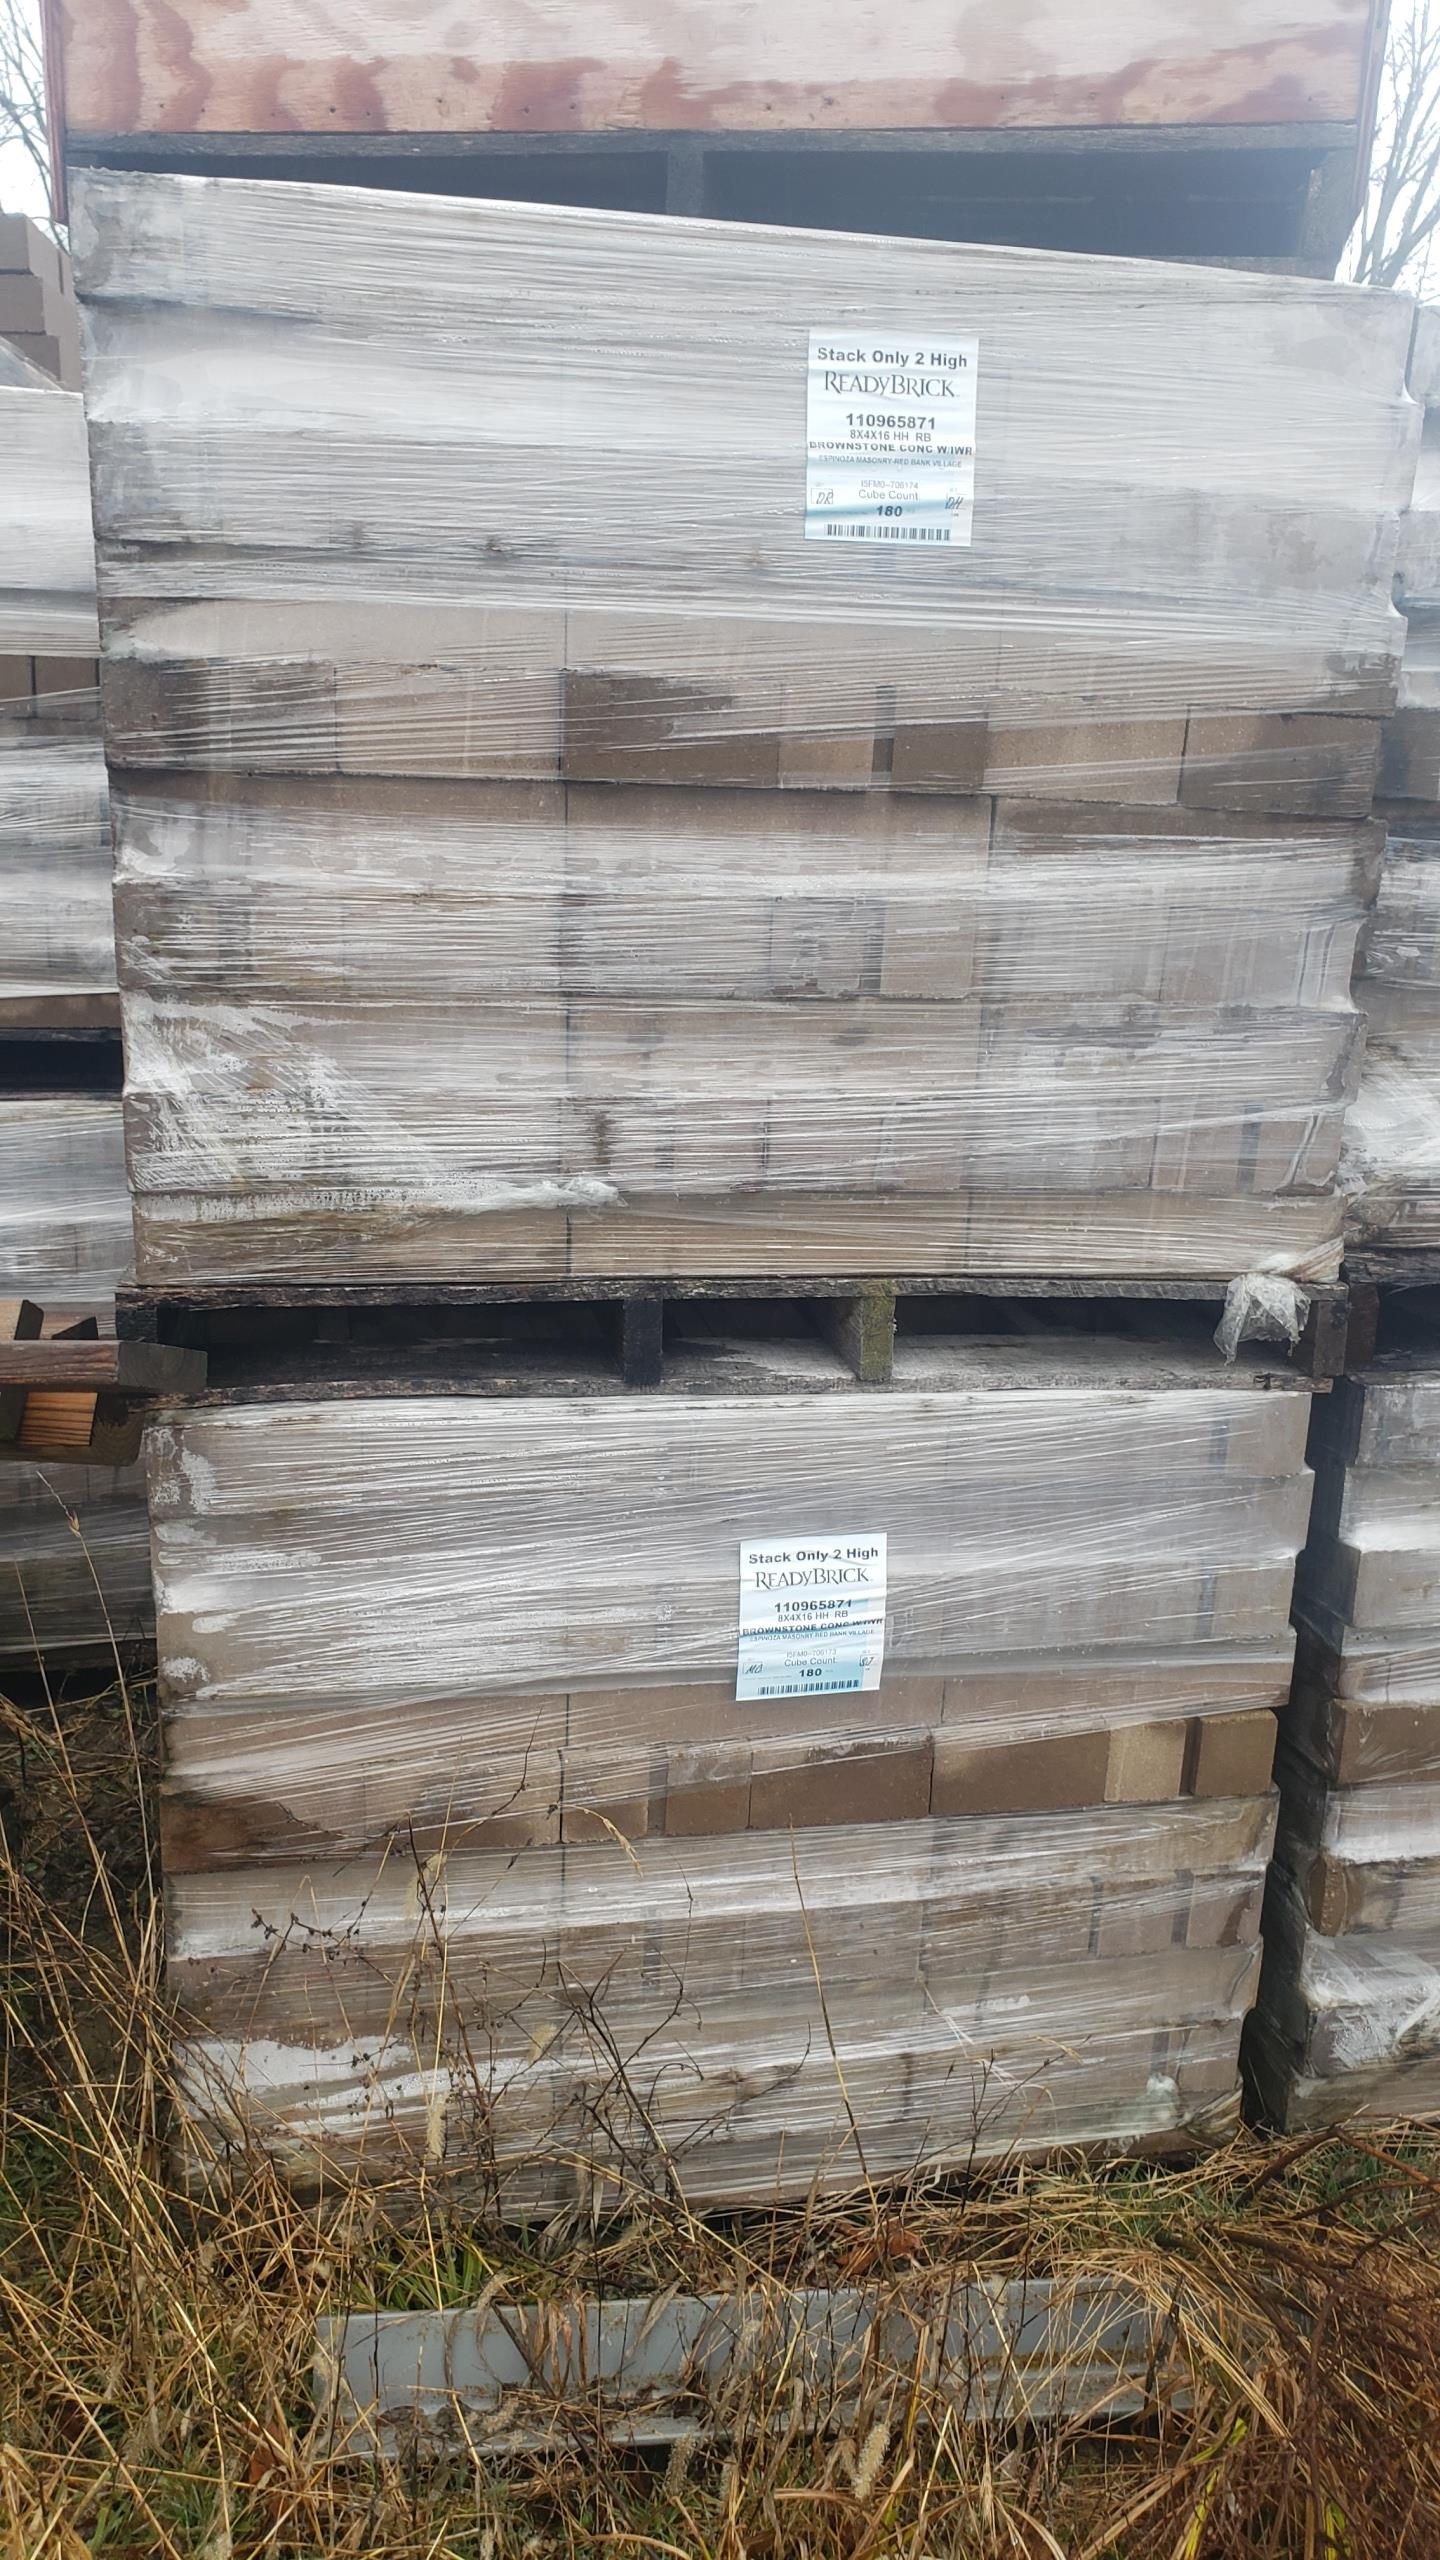 (42) Skids ReadyBrick 8x4x16 HH RB, Brownstone Conc W/IWR 180 count per skid, Loading Fee $400 - Image 3 of 3